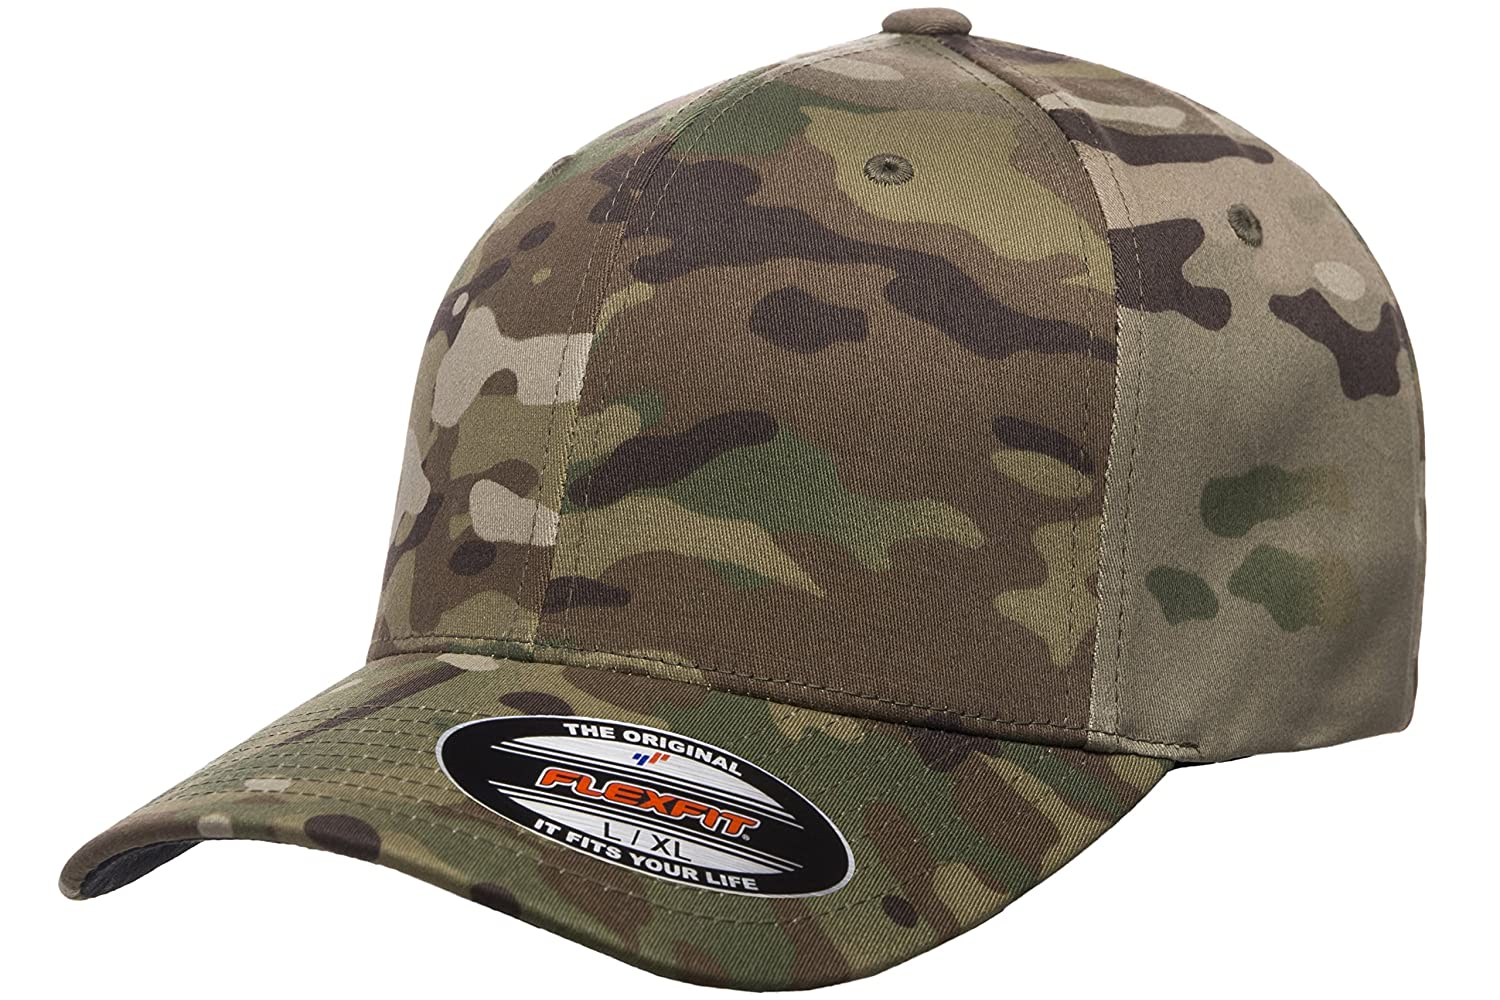 eefed0f059f11 Amazon.com  Flexfit Multicam 6 Panel Baseball Cap Officially Licensed  Multi-Cam 2 Patterns Black Camo or Green Camo  Clothing